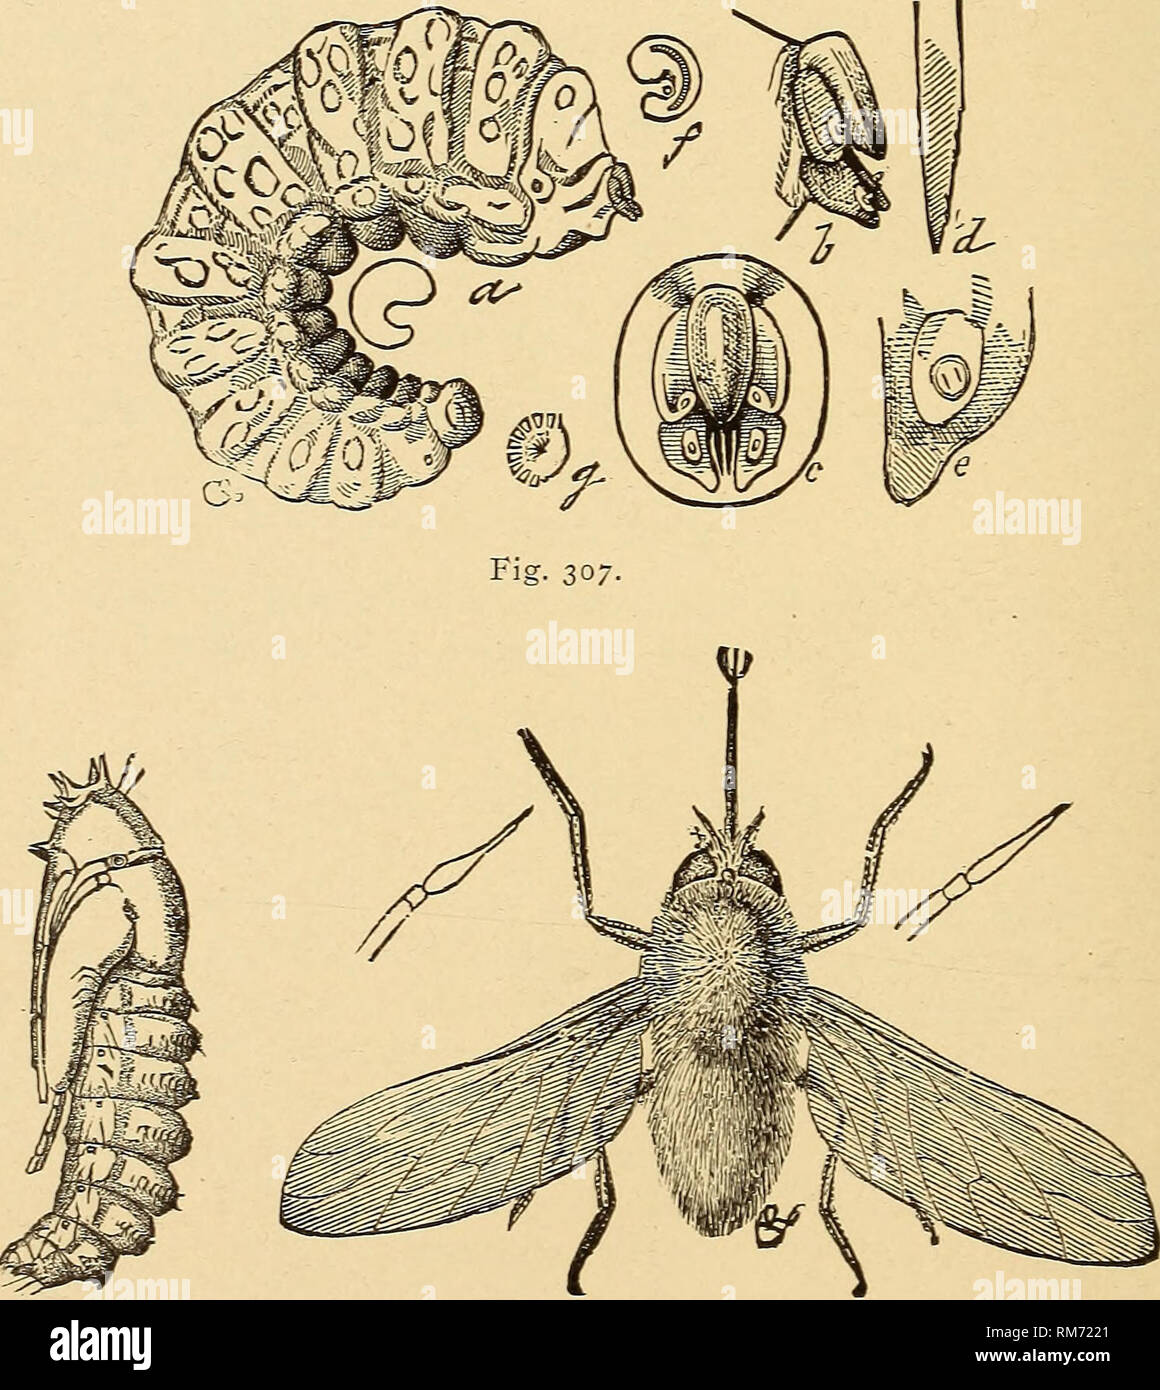 . Annual report, including a report of the insects of New Jersey, 1909. Fig- 30:. Fig. 306. Fig. 305.—Antlirax hippomelas: a, larva; b, fly pupa projecting from cut-worm pupa; c, pupa; d, adult: all enlarged. Fig. 306.—Bee-fly, SystcccJius oreas, parasitic on grasshopper egg-pods, pupa and adult. Fig. 307.—Larva of Systccclms orcas enlarged and details of structure.. Please note that these images are extracted from scanned page images that may have been digitally enhanced for readability - coloration and appearance of these illustrations may not perfectly resemble the original work.. New Jerse Stock Photo